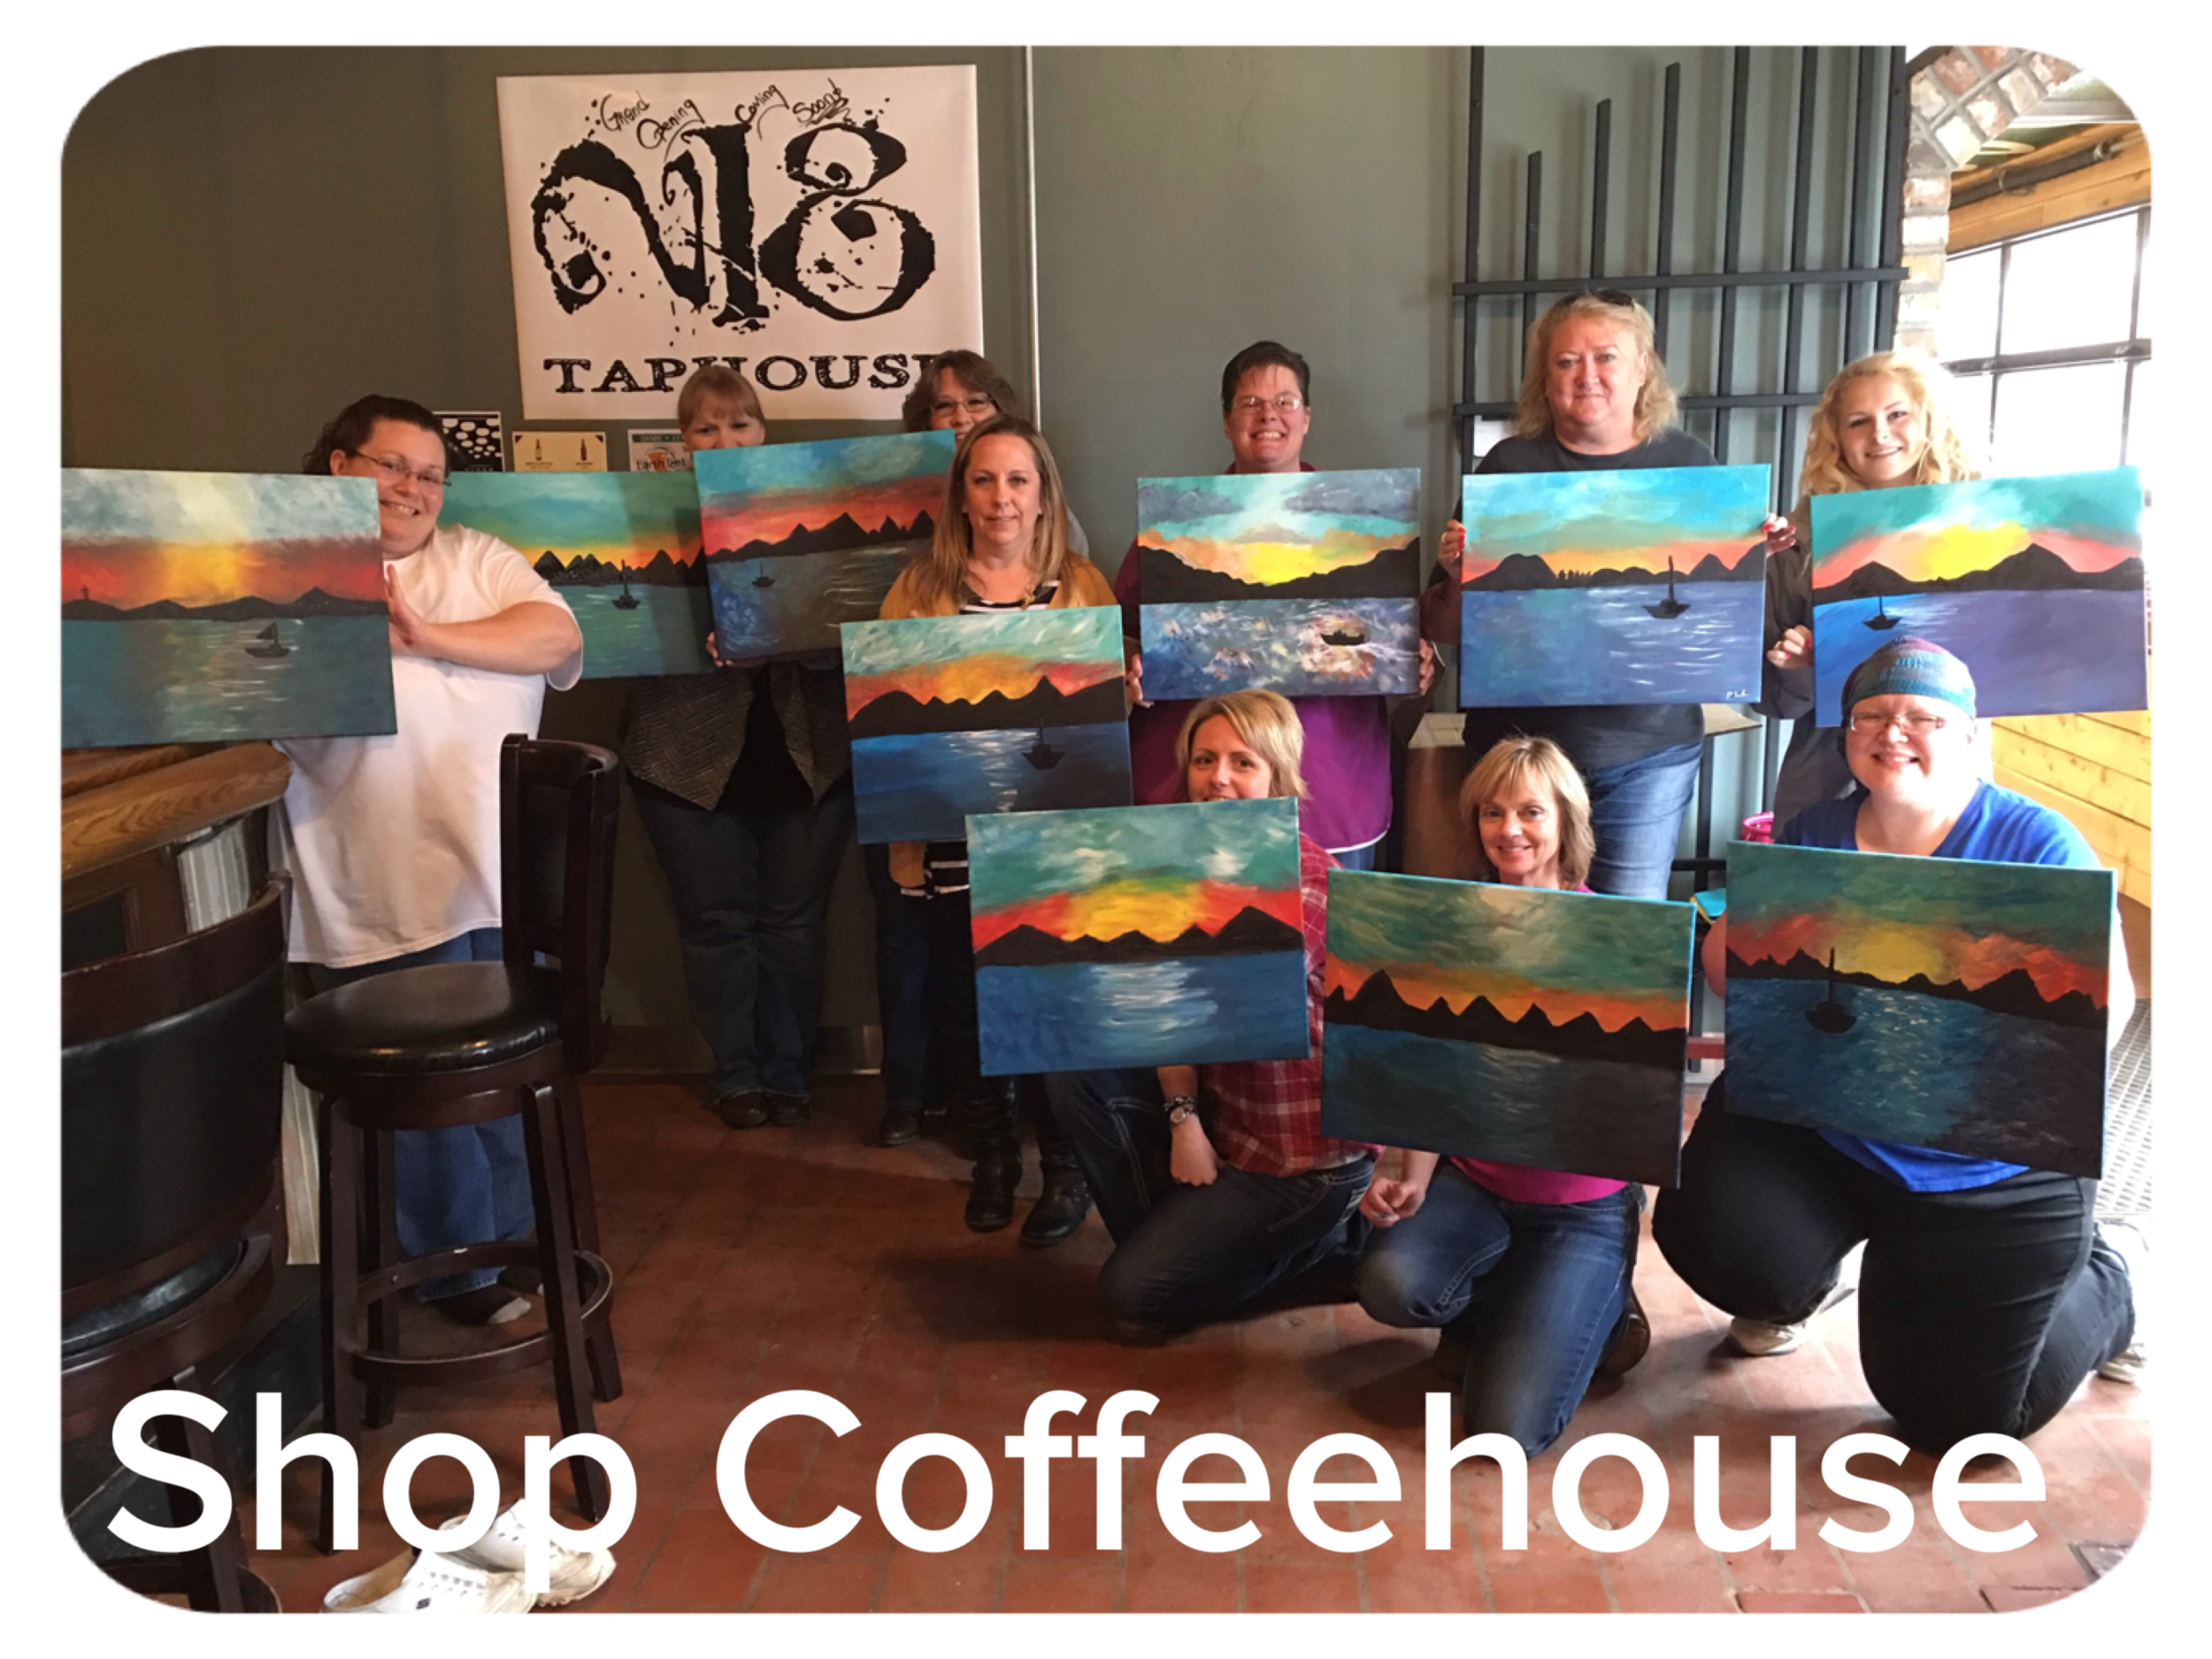 The Shop Coffeehouse afternoon